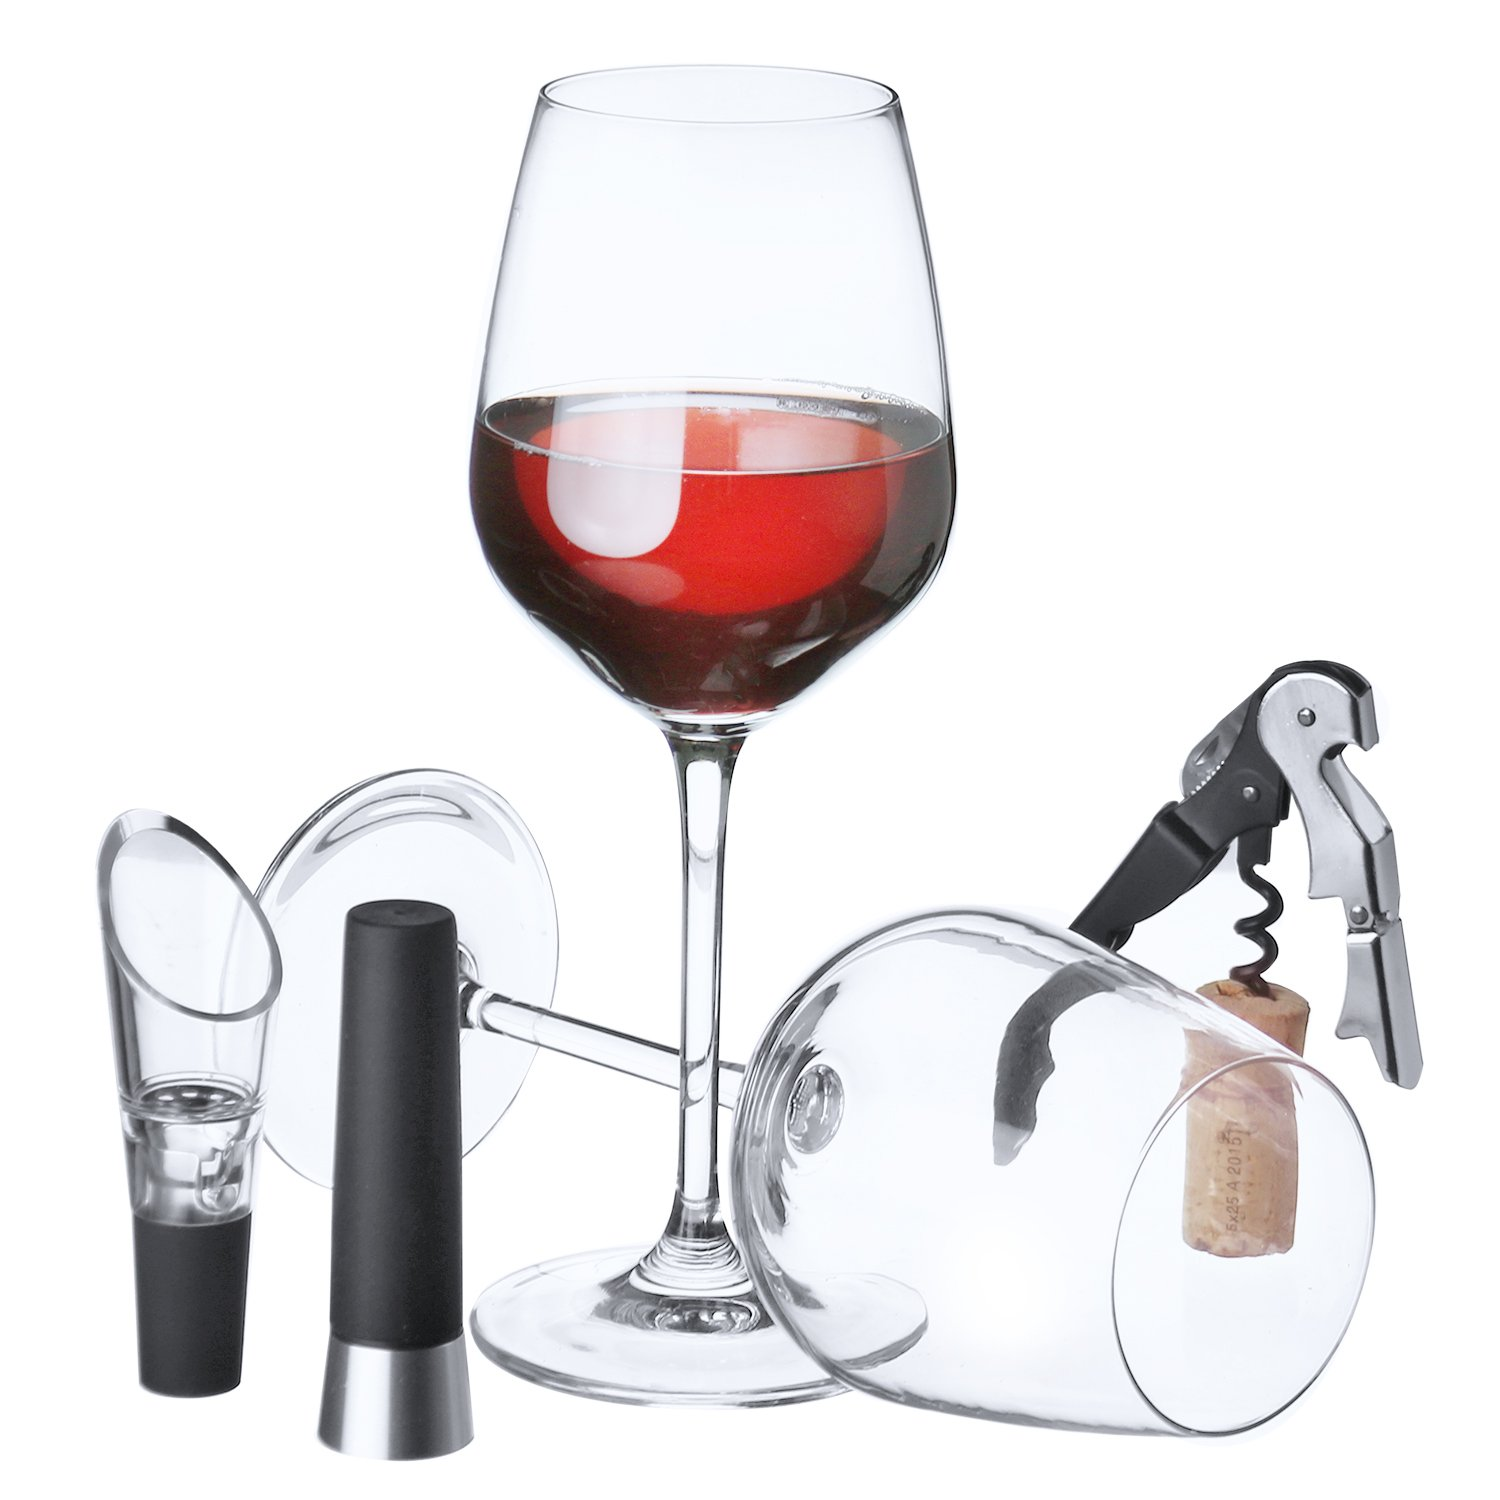 Zalik Wine Glasses Gift Set - Set Of 2 Wine Glasses, Wine Opener, Wine Stopper And Wine Aerator Pourer For Enhanced Flavor - Perfect Gift For Every Occasion - Wine Accessories - Elegant Gift Box by Zalik (Image #4)